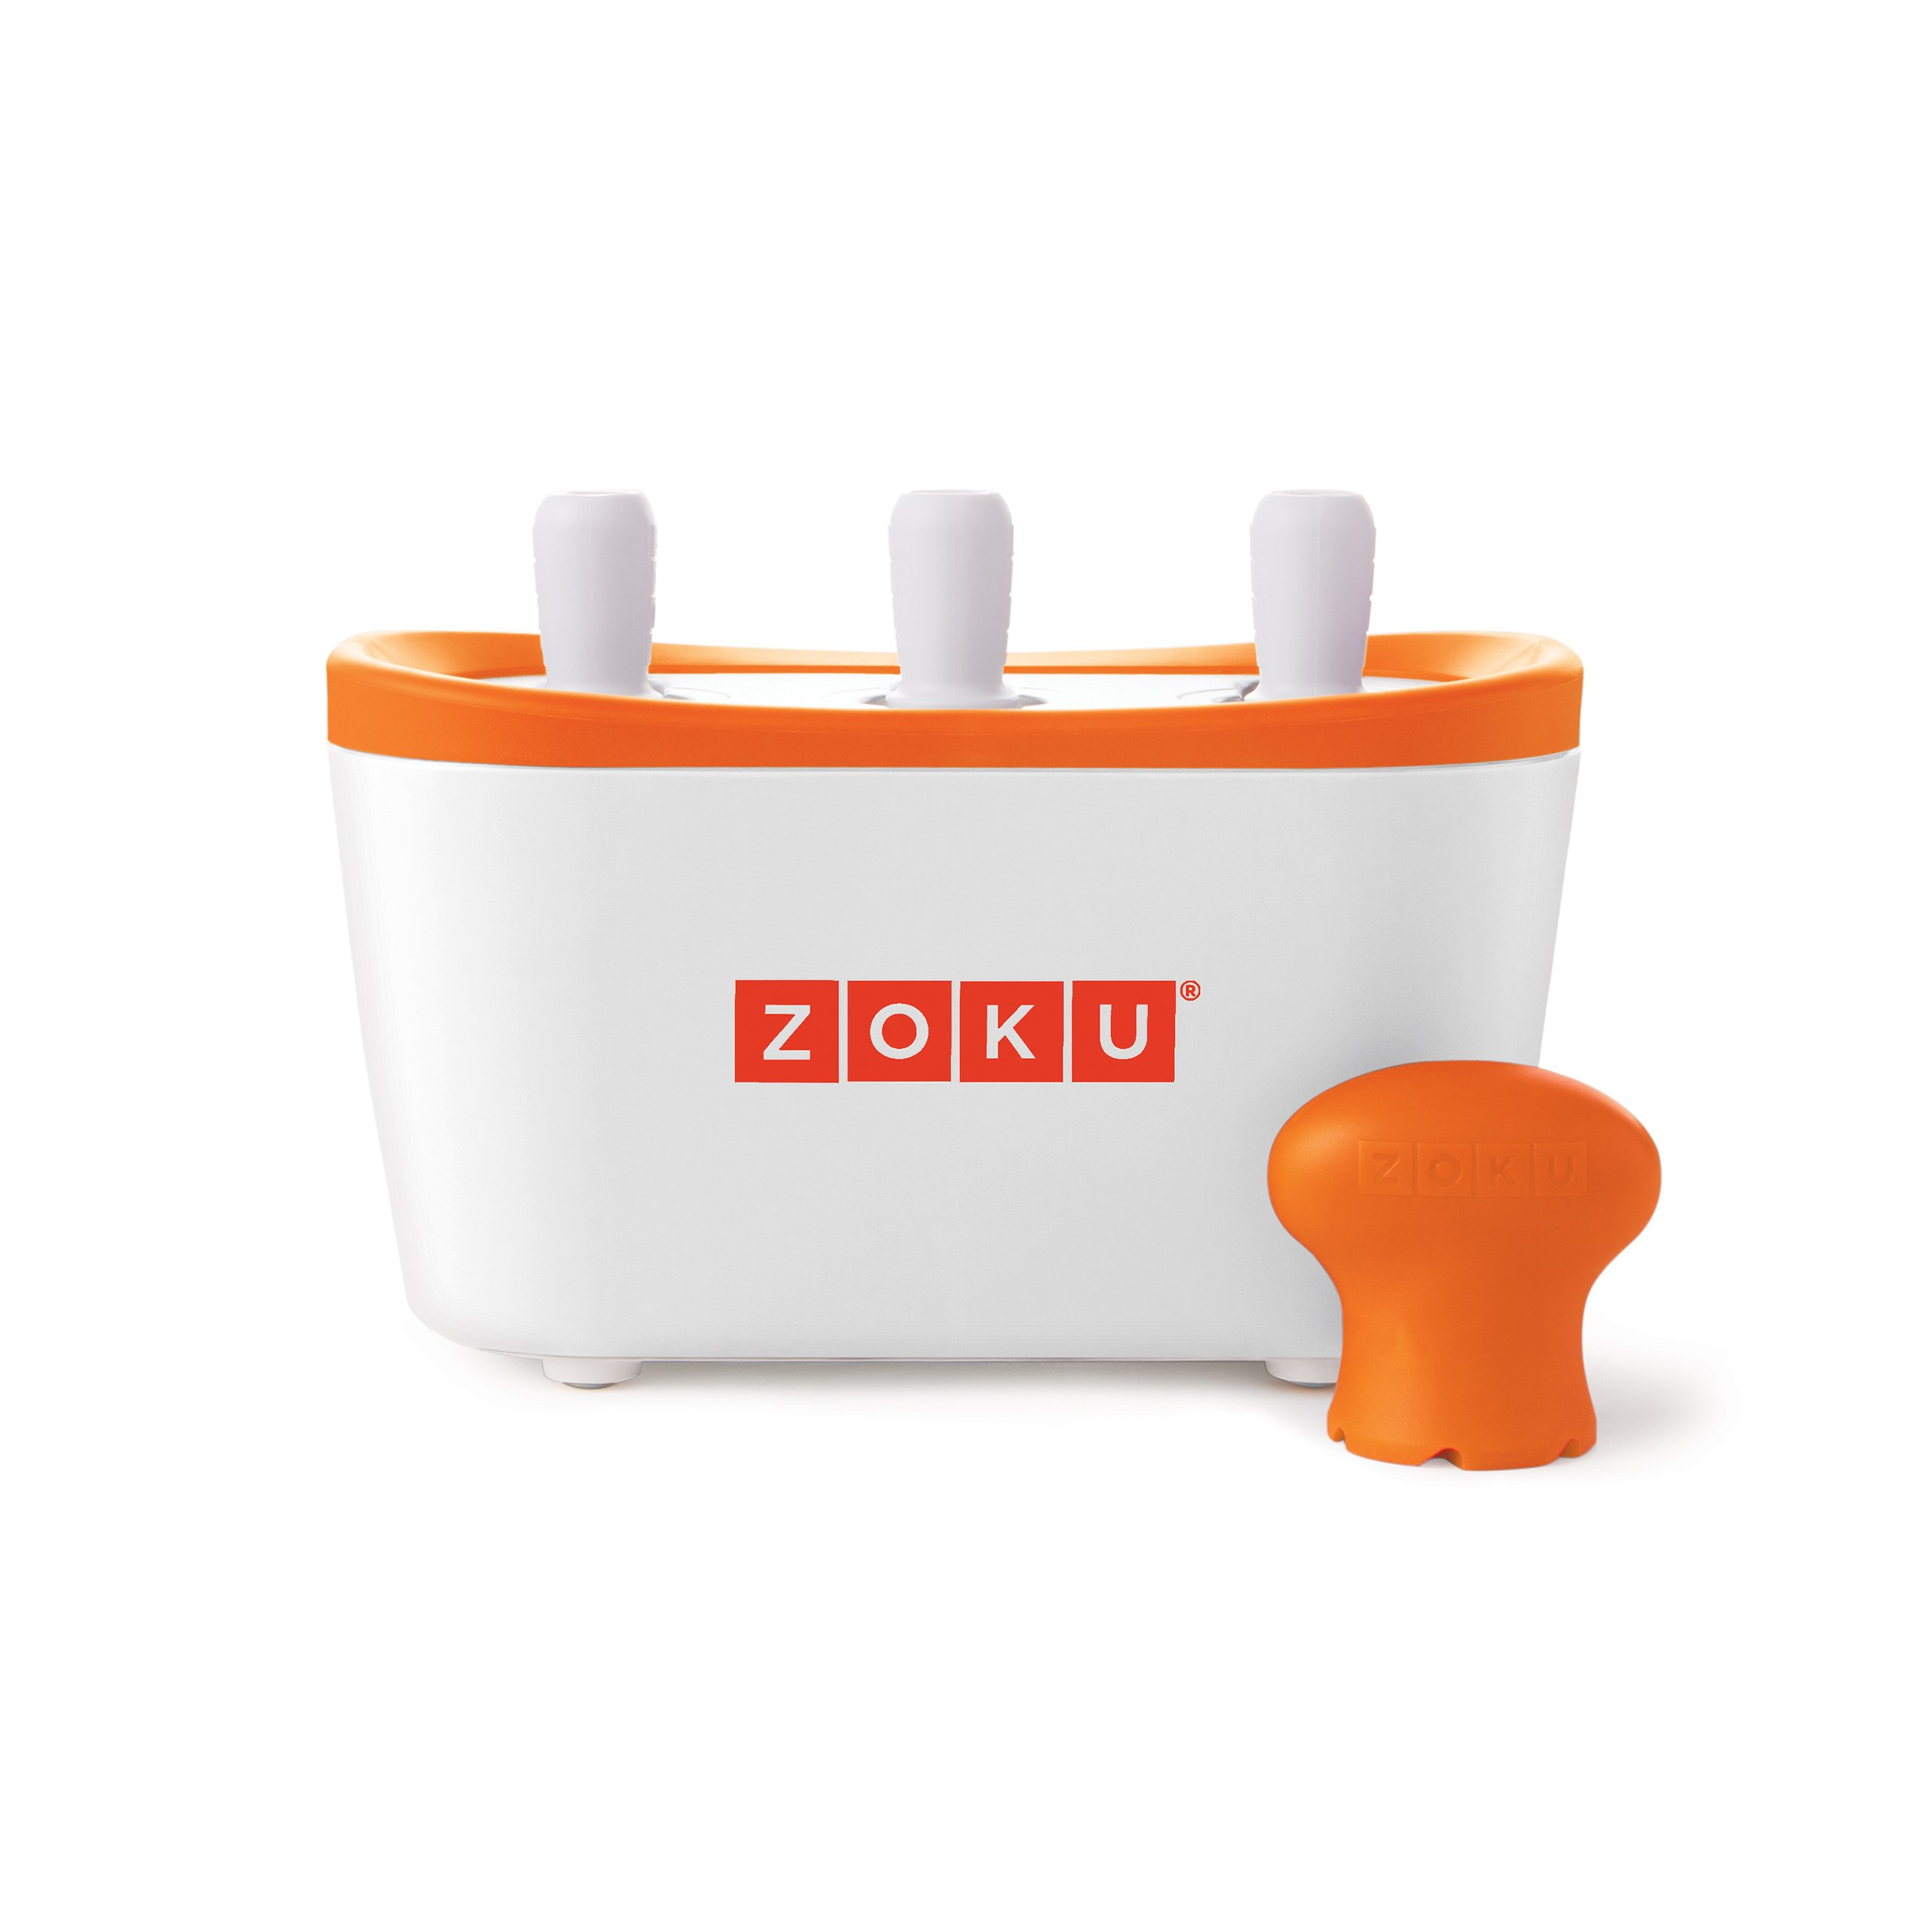 Zoku Quick Pop Maker, Make Popsicles in as Little as 7 Minutes on your Countertop, White by Zoku